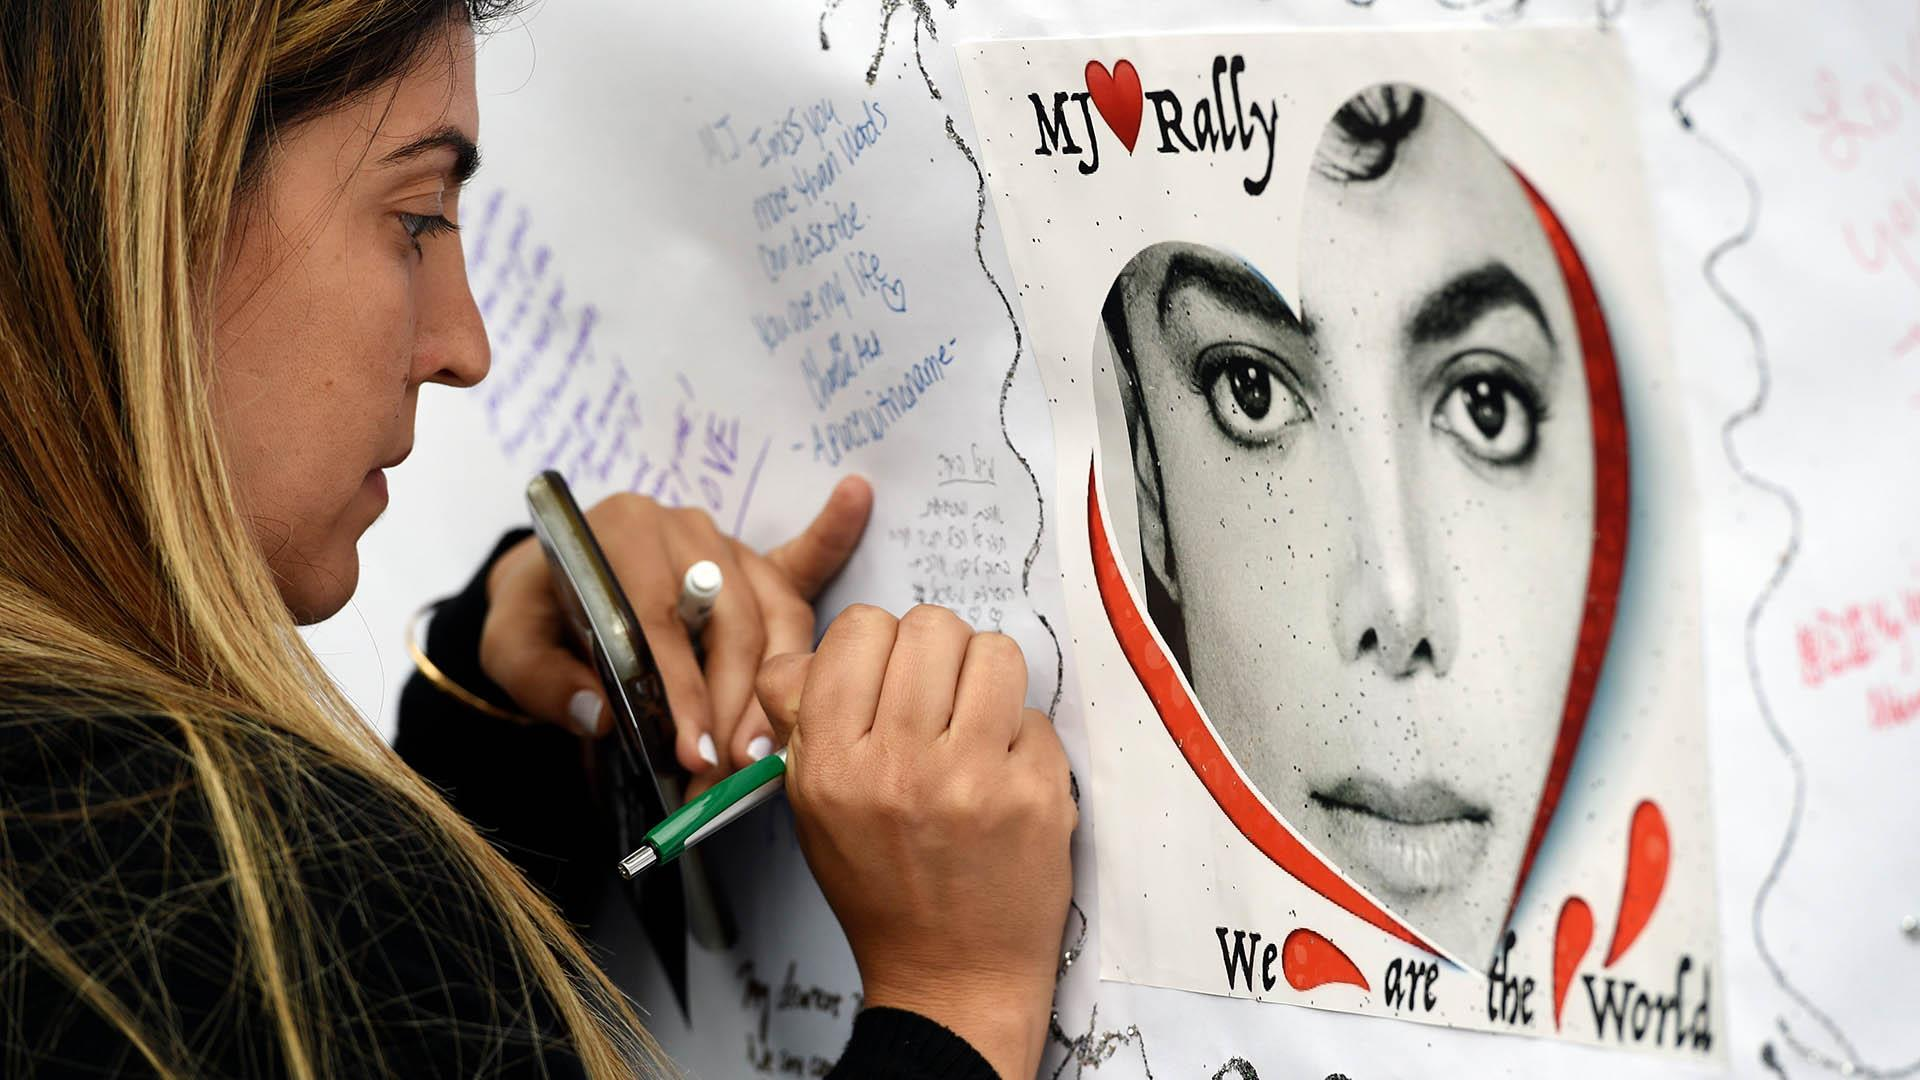 Michael Jackson fans in California mark 10th anniversary of his death